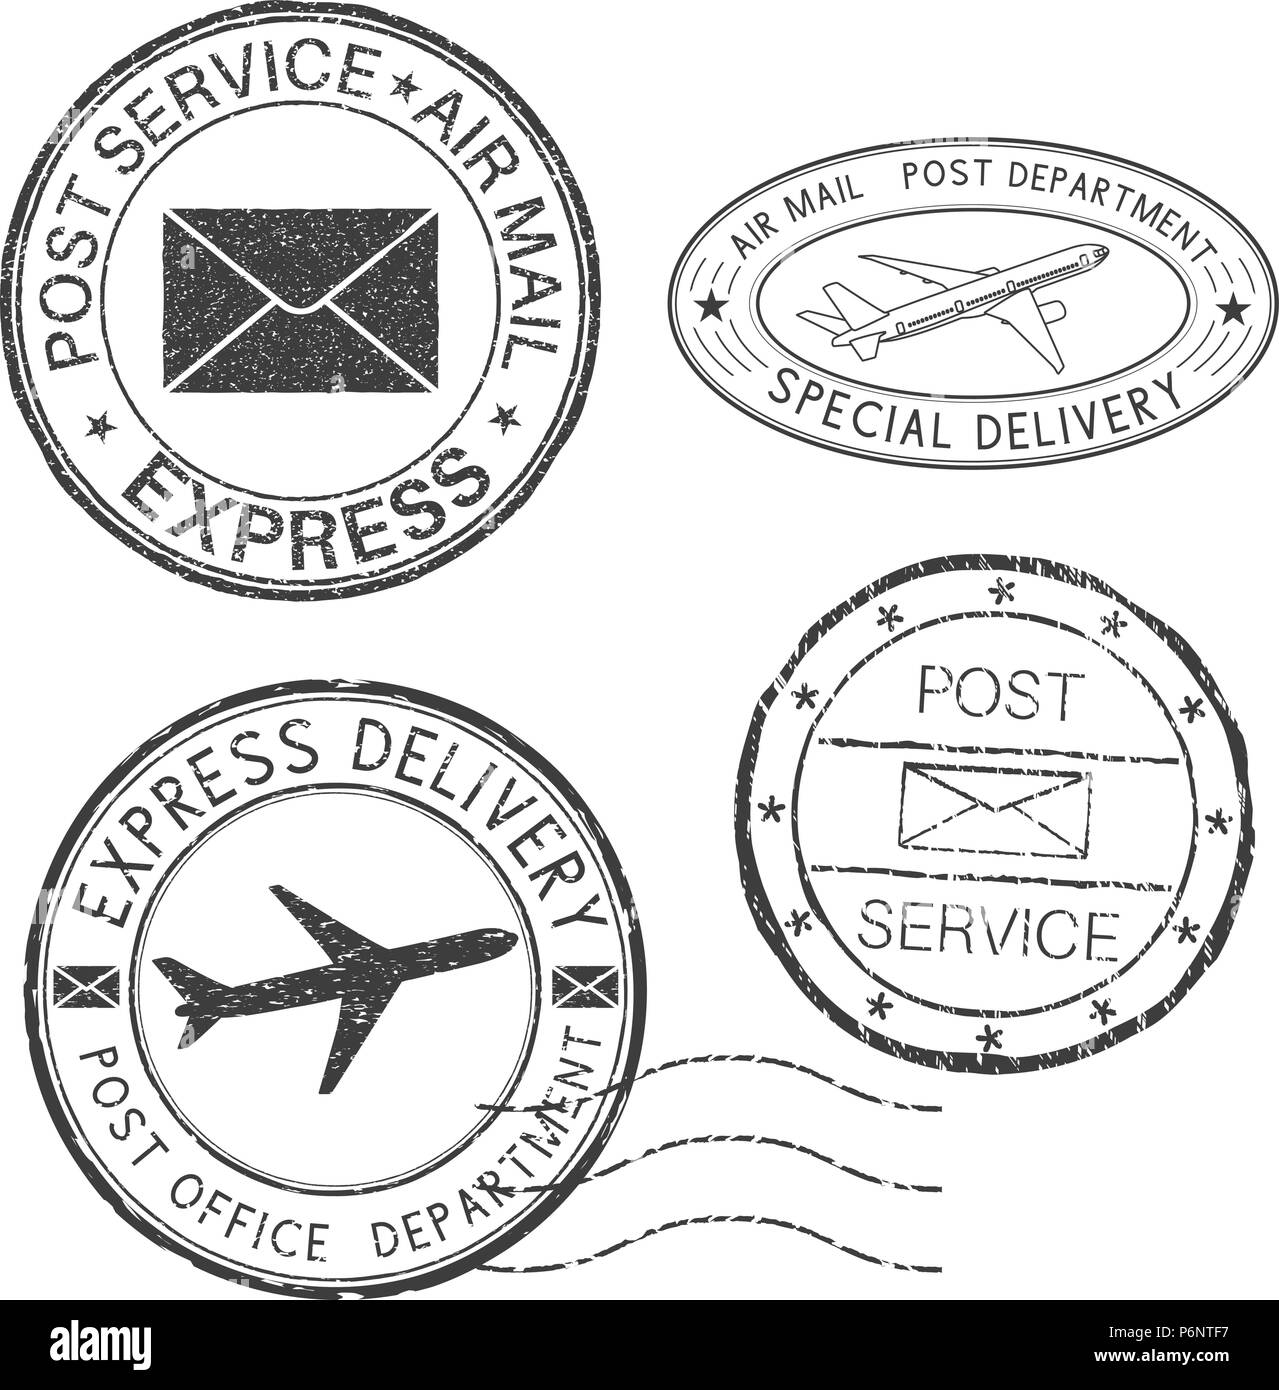 Postmarks. Black ink round postal stamps - Stock Image